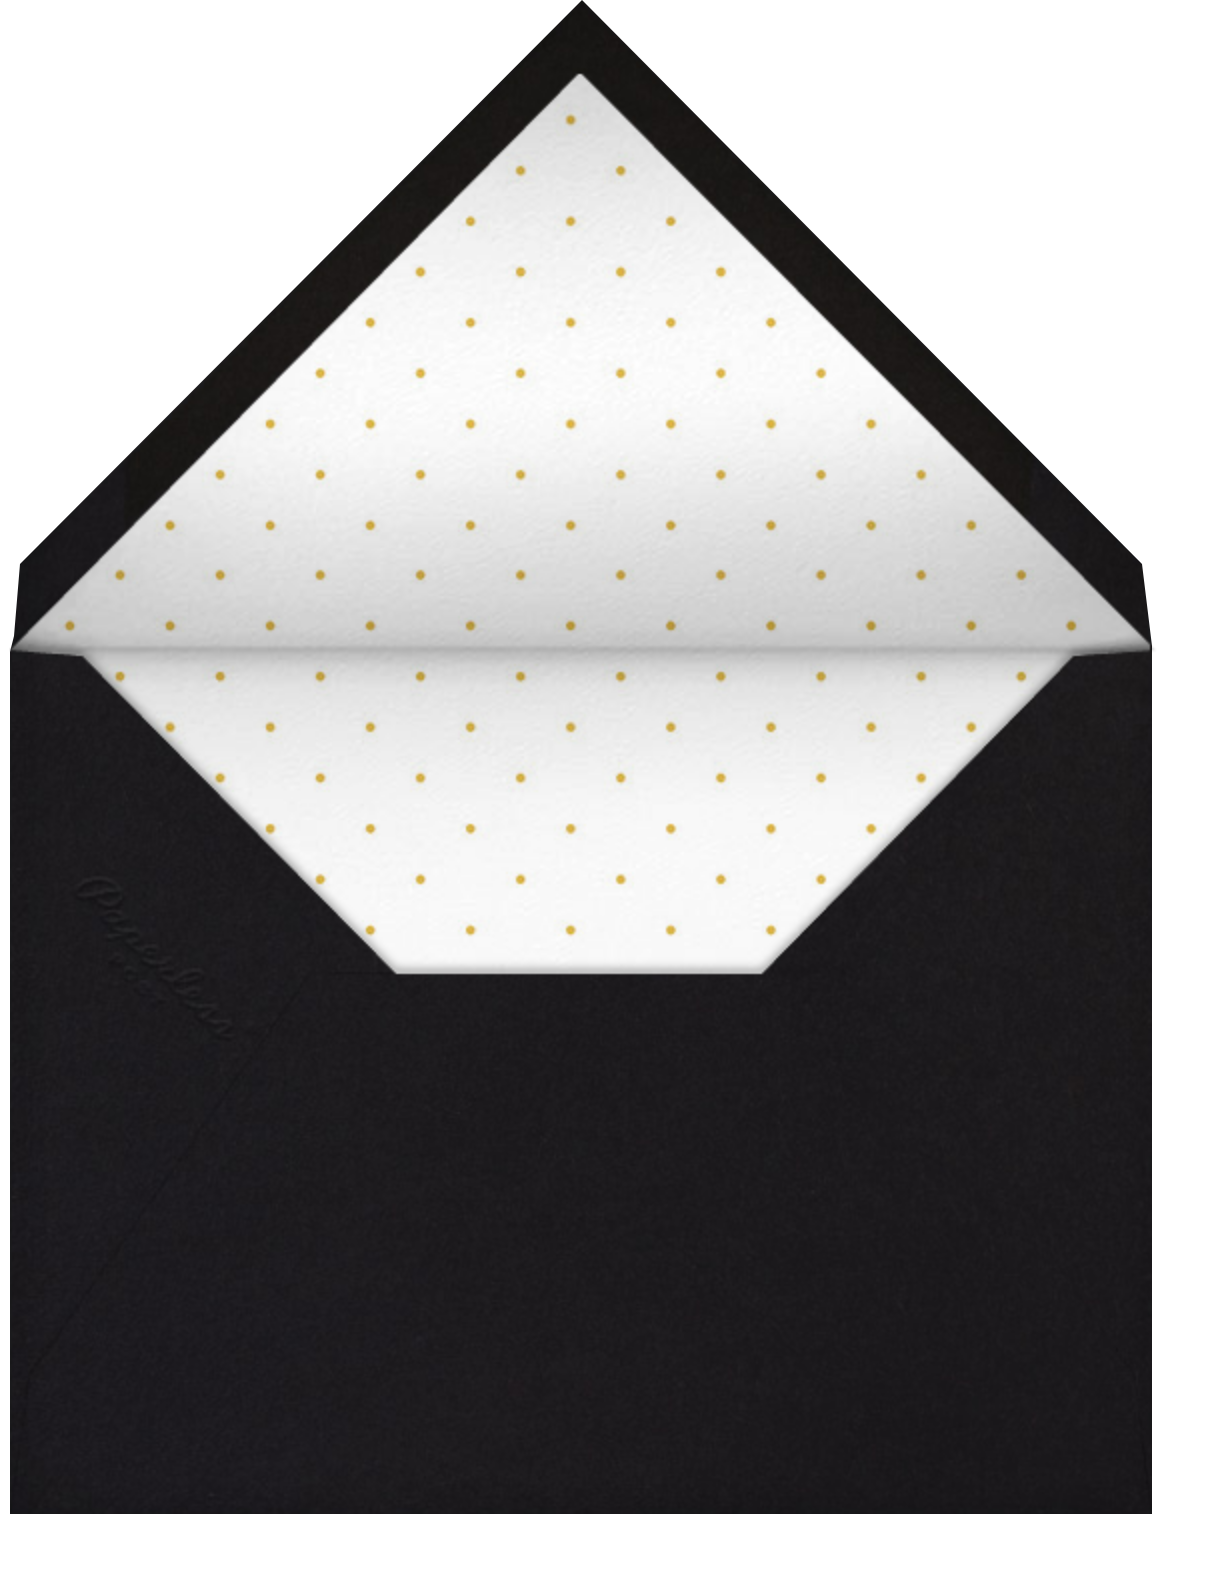 Deco Degree - Paperless Post - Graduation party - envelope back